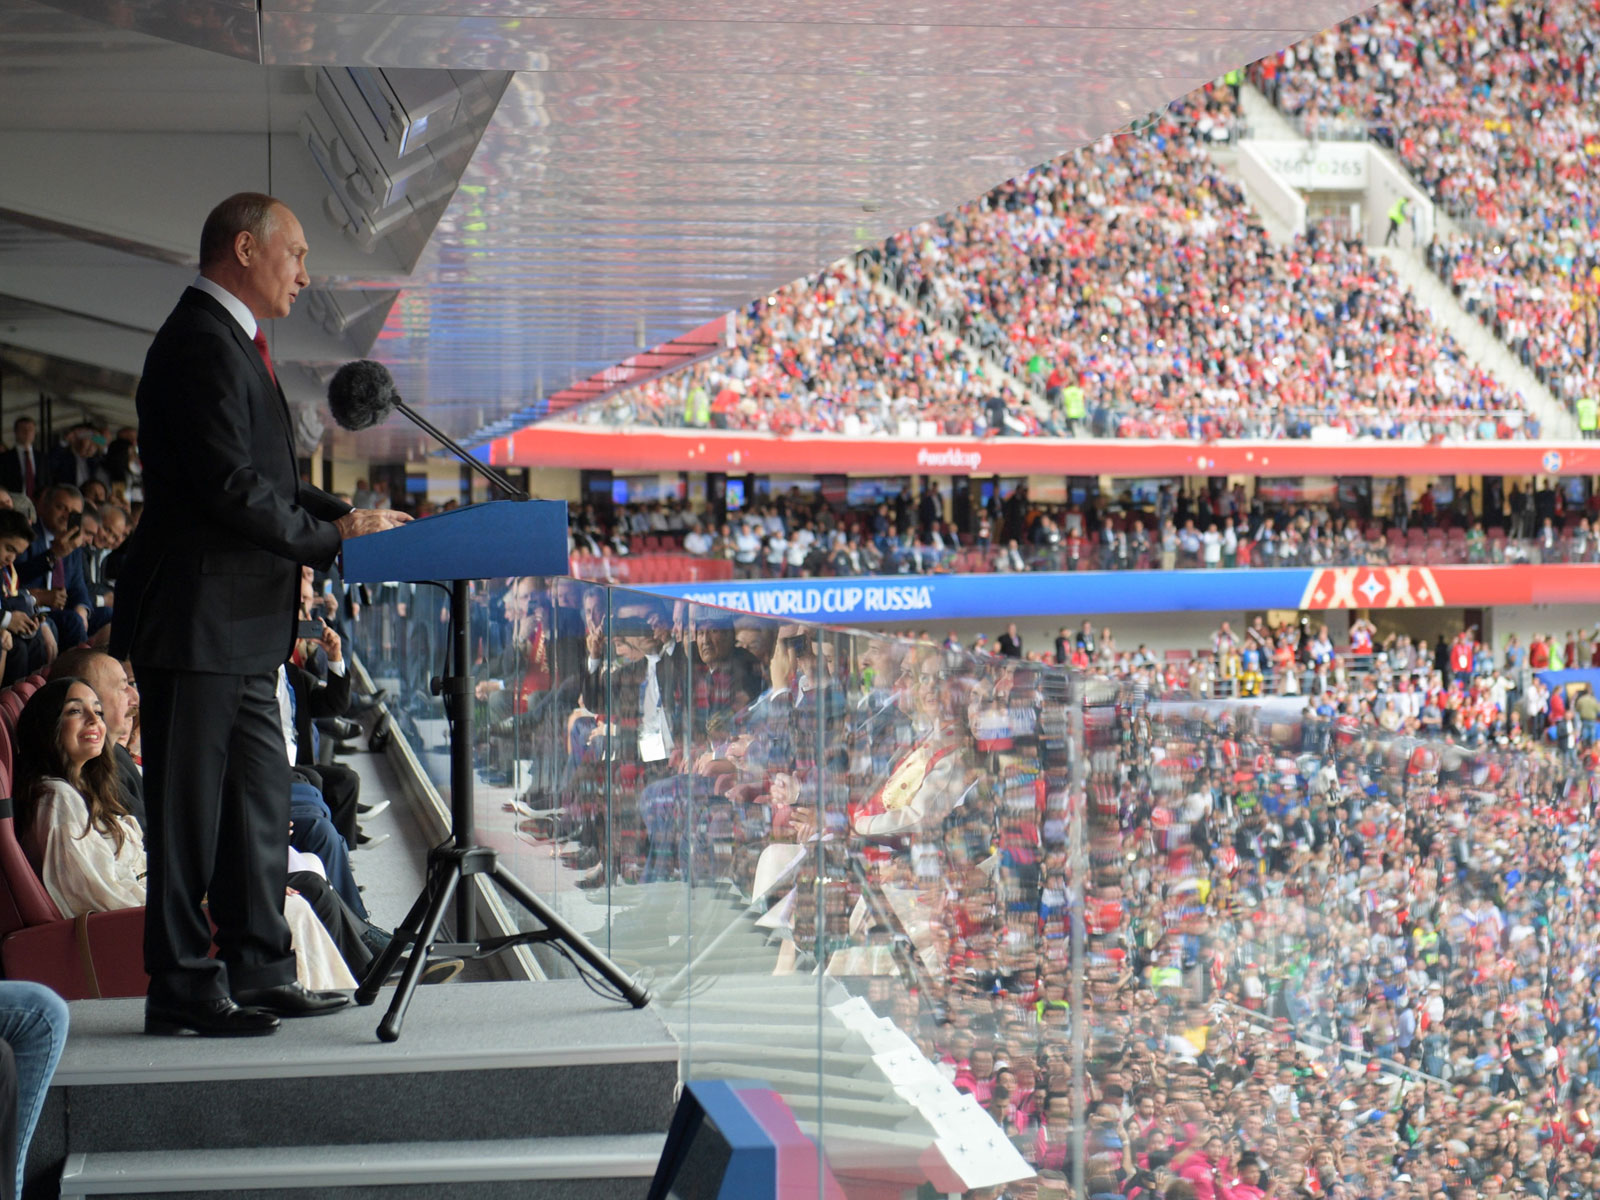 Vladimir Putin addresses the crowd at the World Cup opener